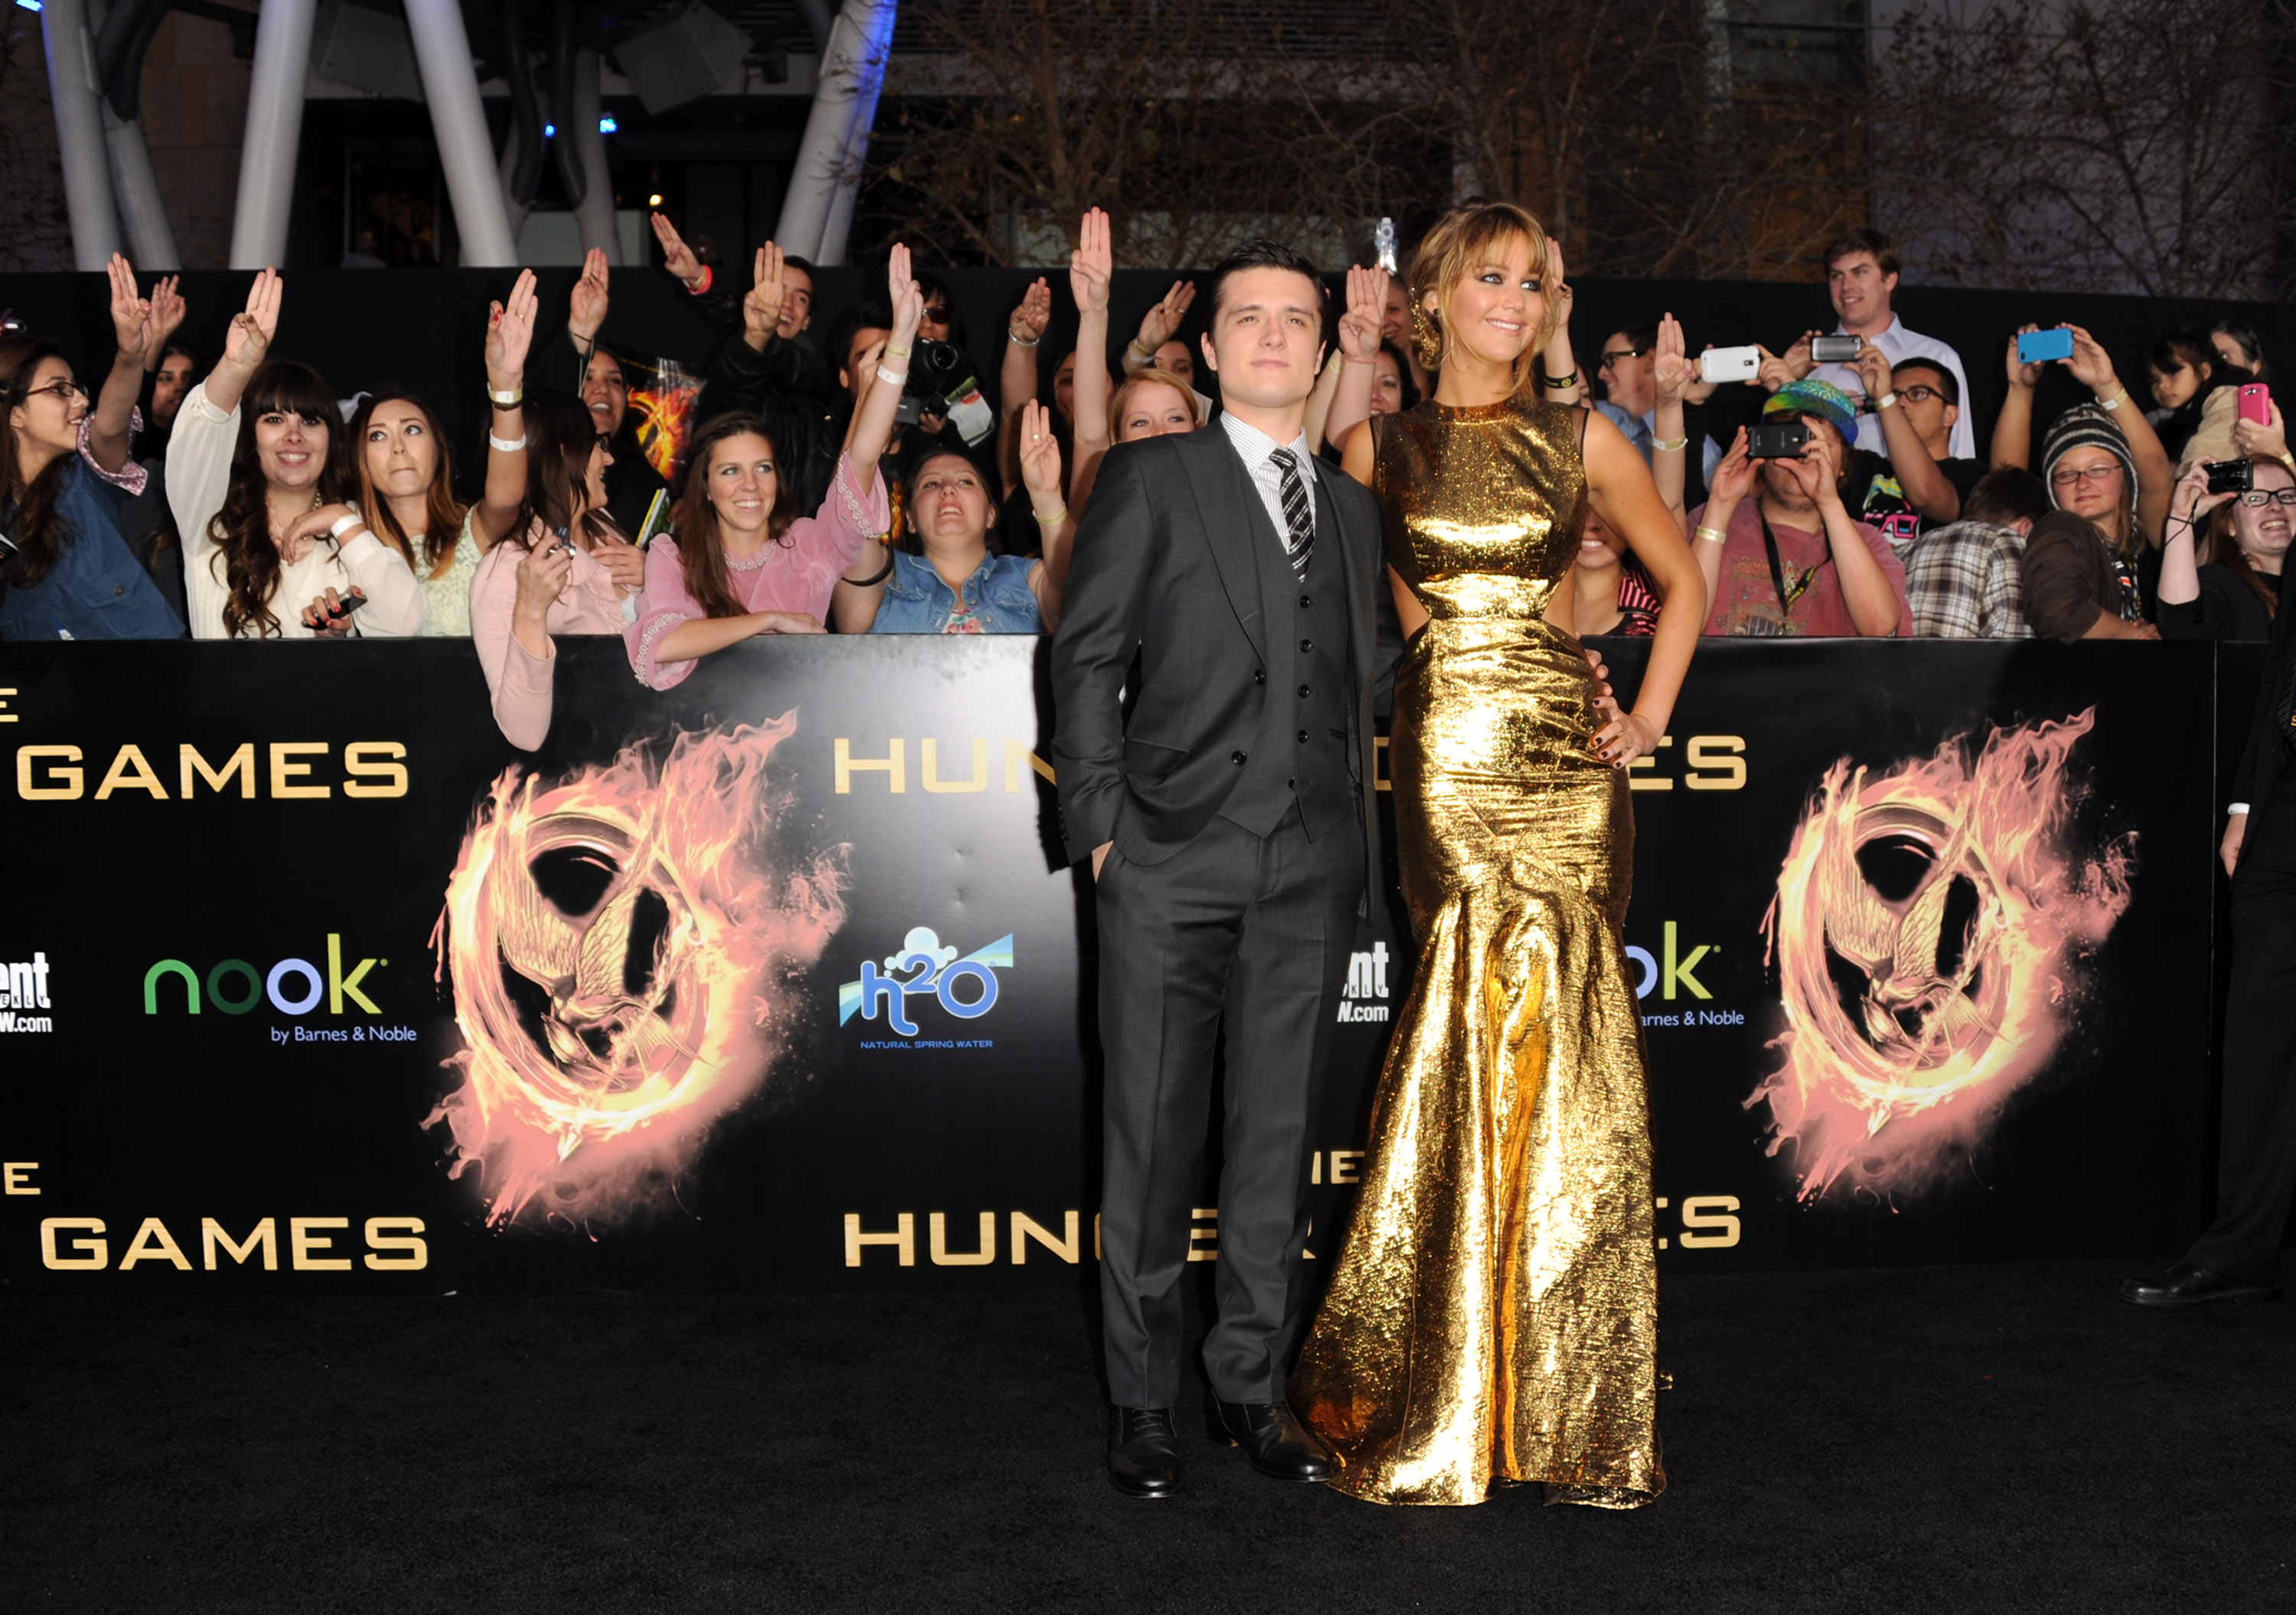 Josh Hutcherson and Jennifer Lawrence arrive at the premiere of The Hunger Games on March 12, 2012 in Los Angeles.